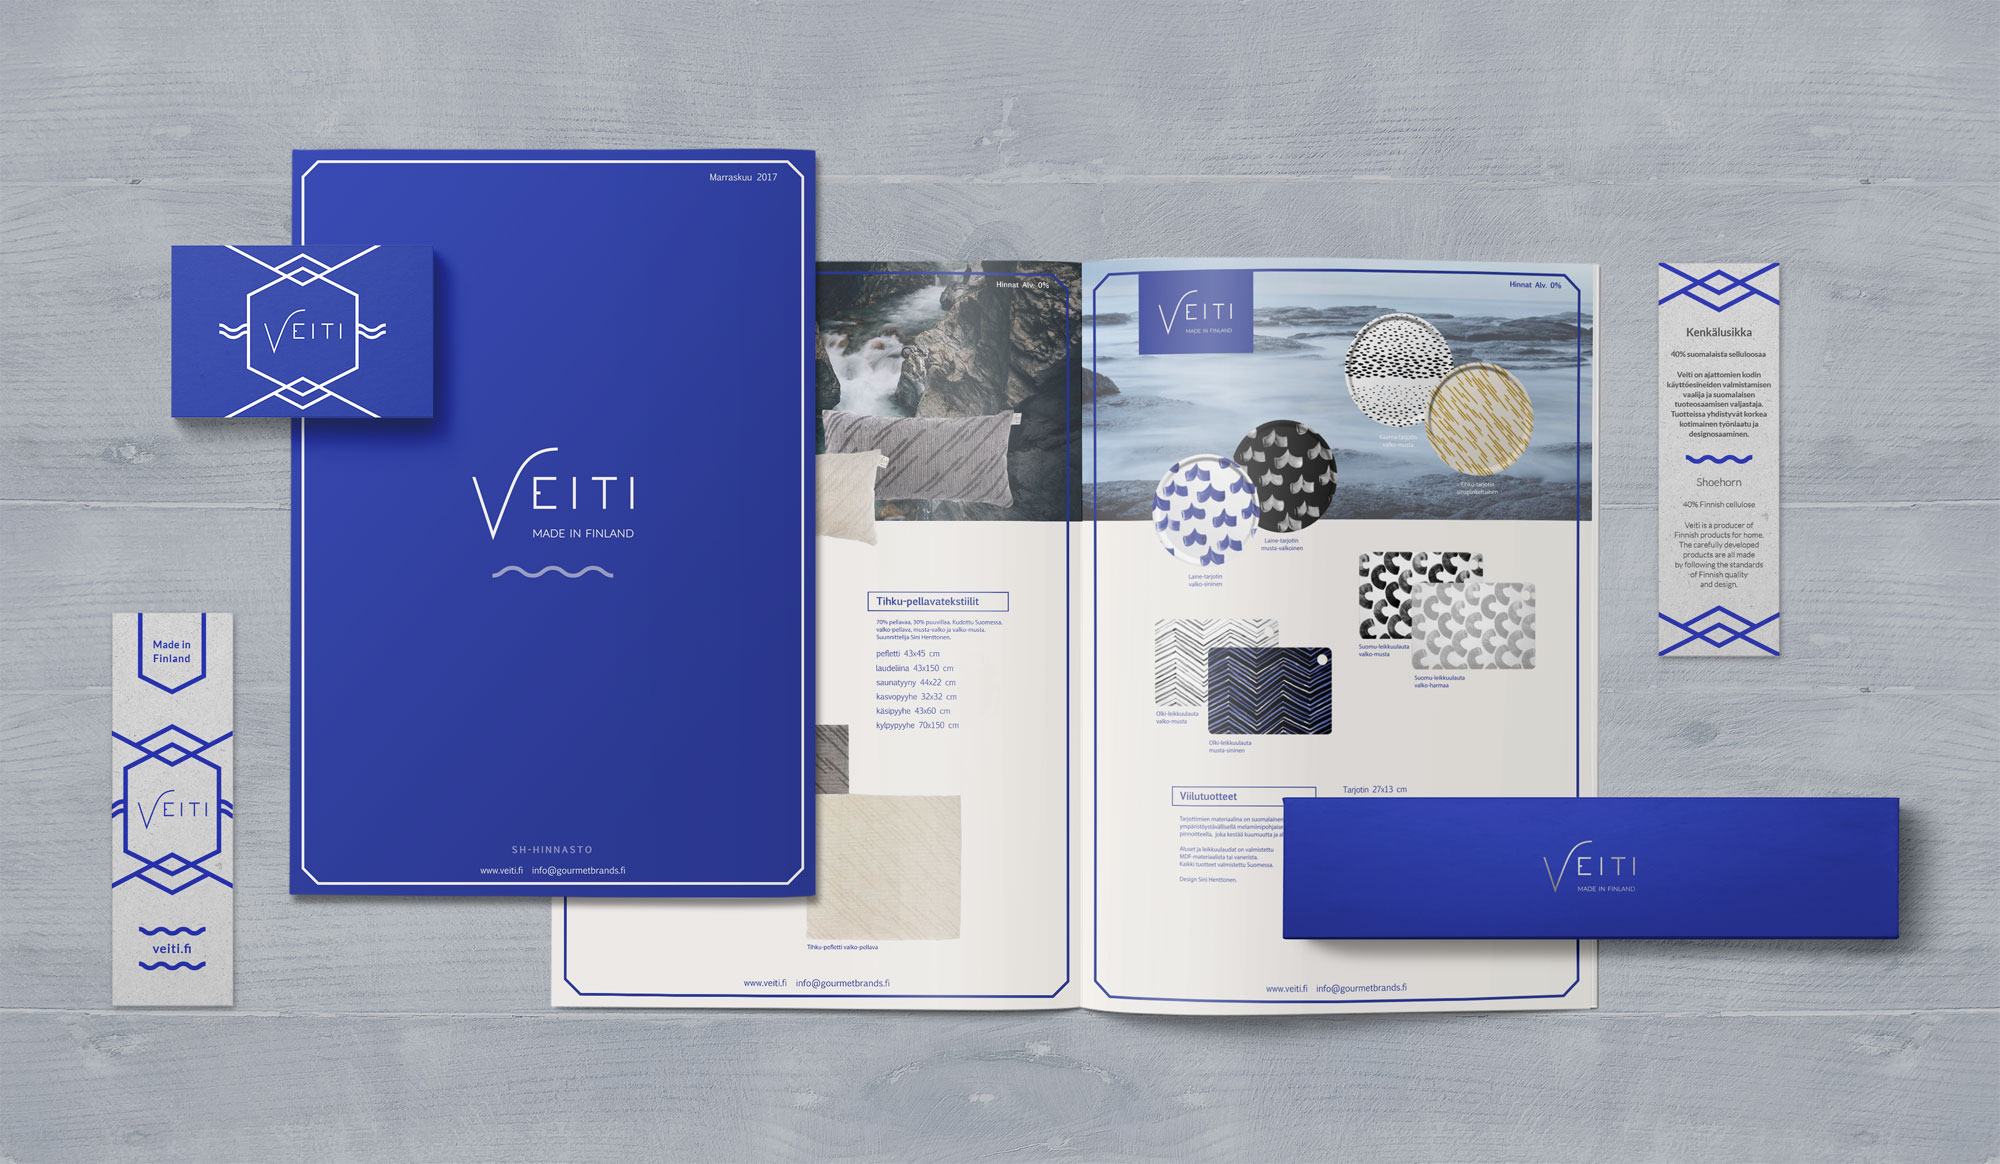 Veiti visual identity